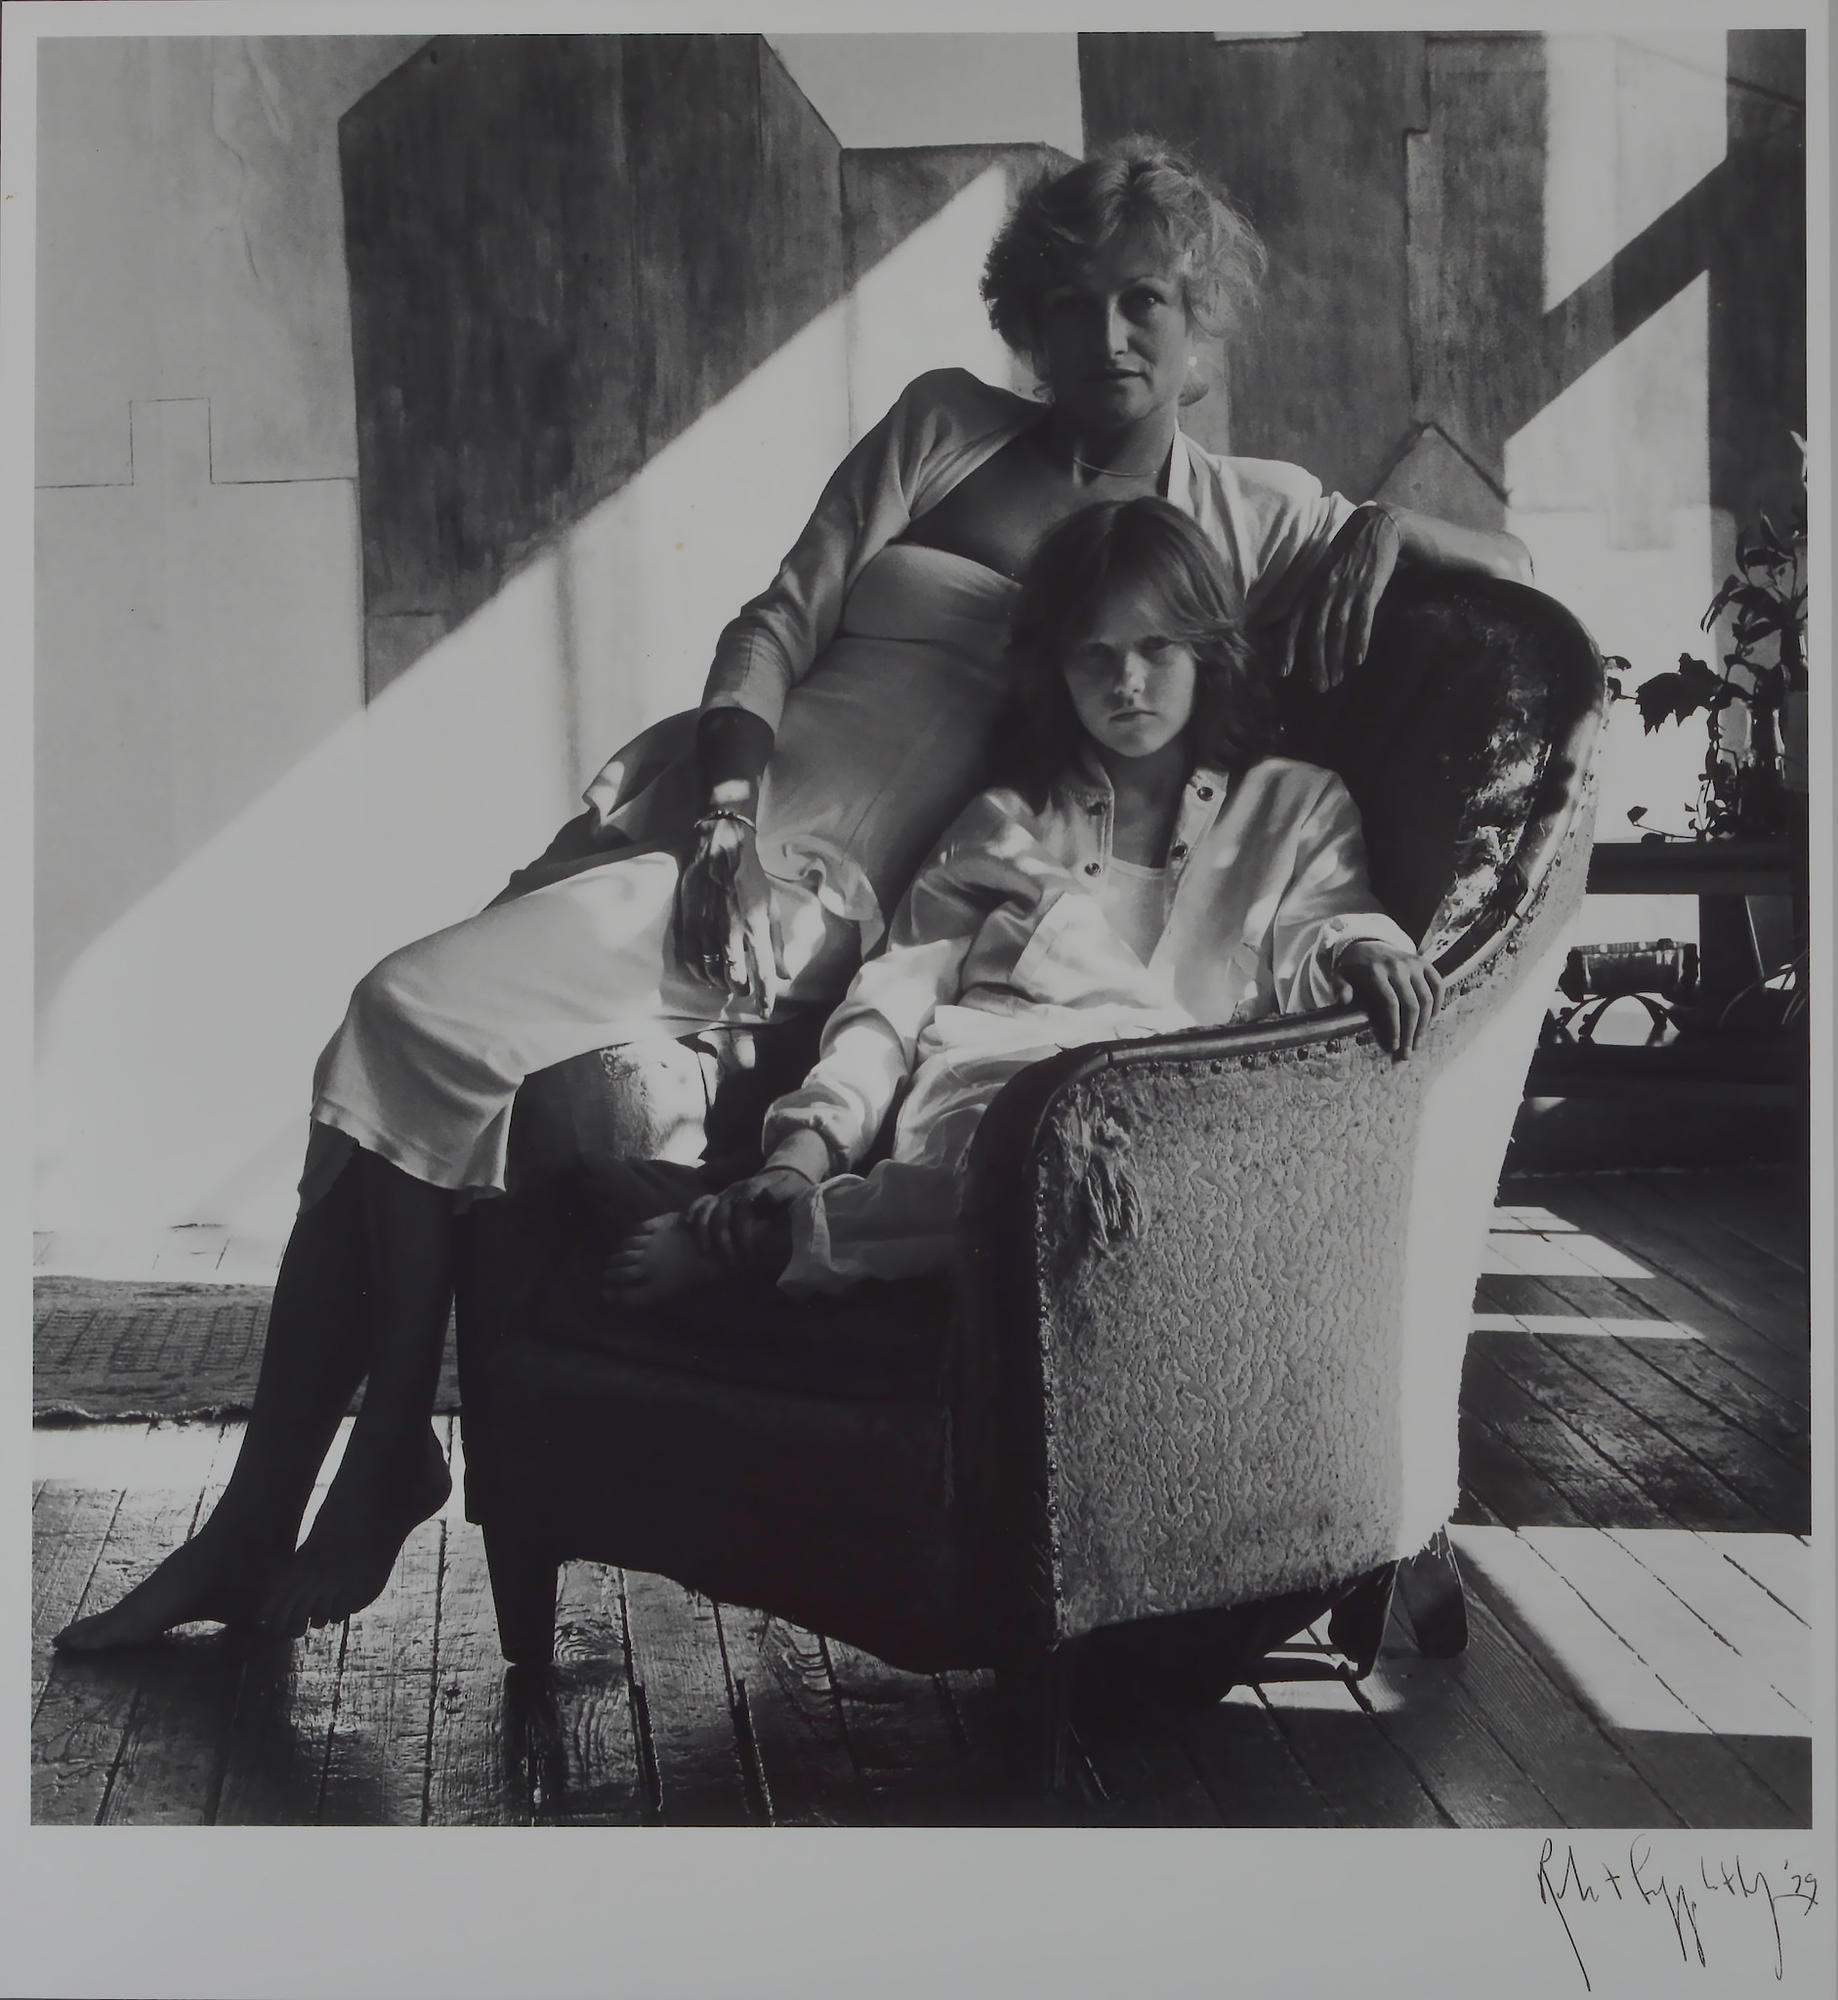 Andes Hruby and her mother, Eve, whom Robert Mapplethorpe like to call Eva.